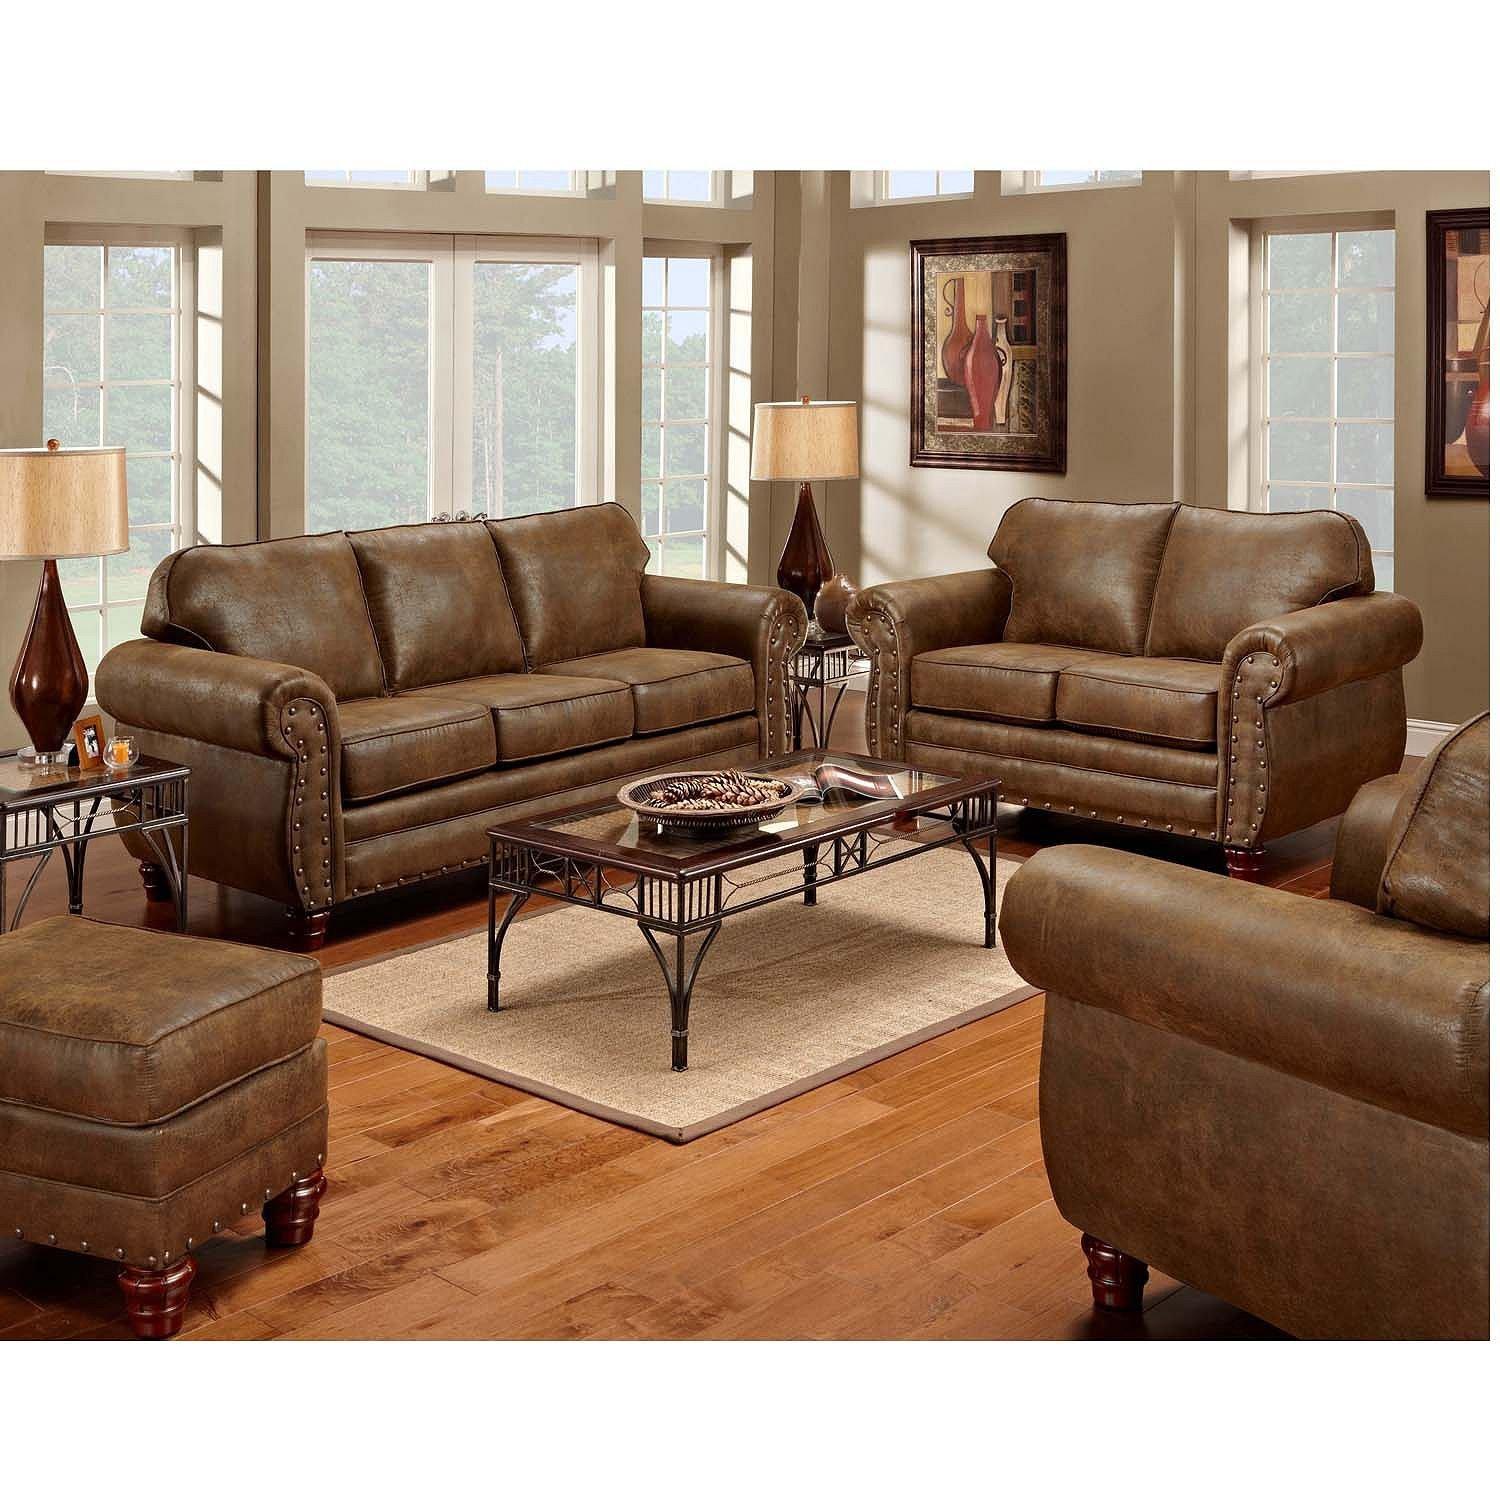 Comfortable Living Roomfurniture Fresh top 4 fortable Chairs for Living Room